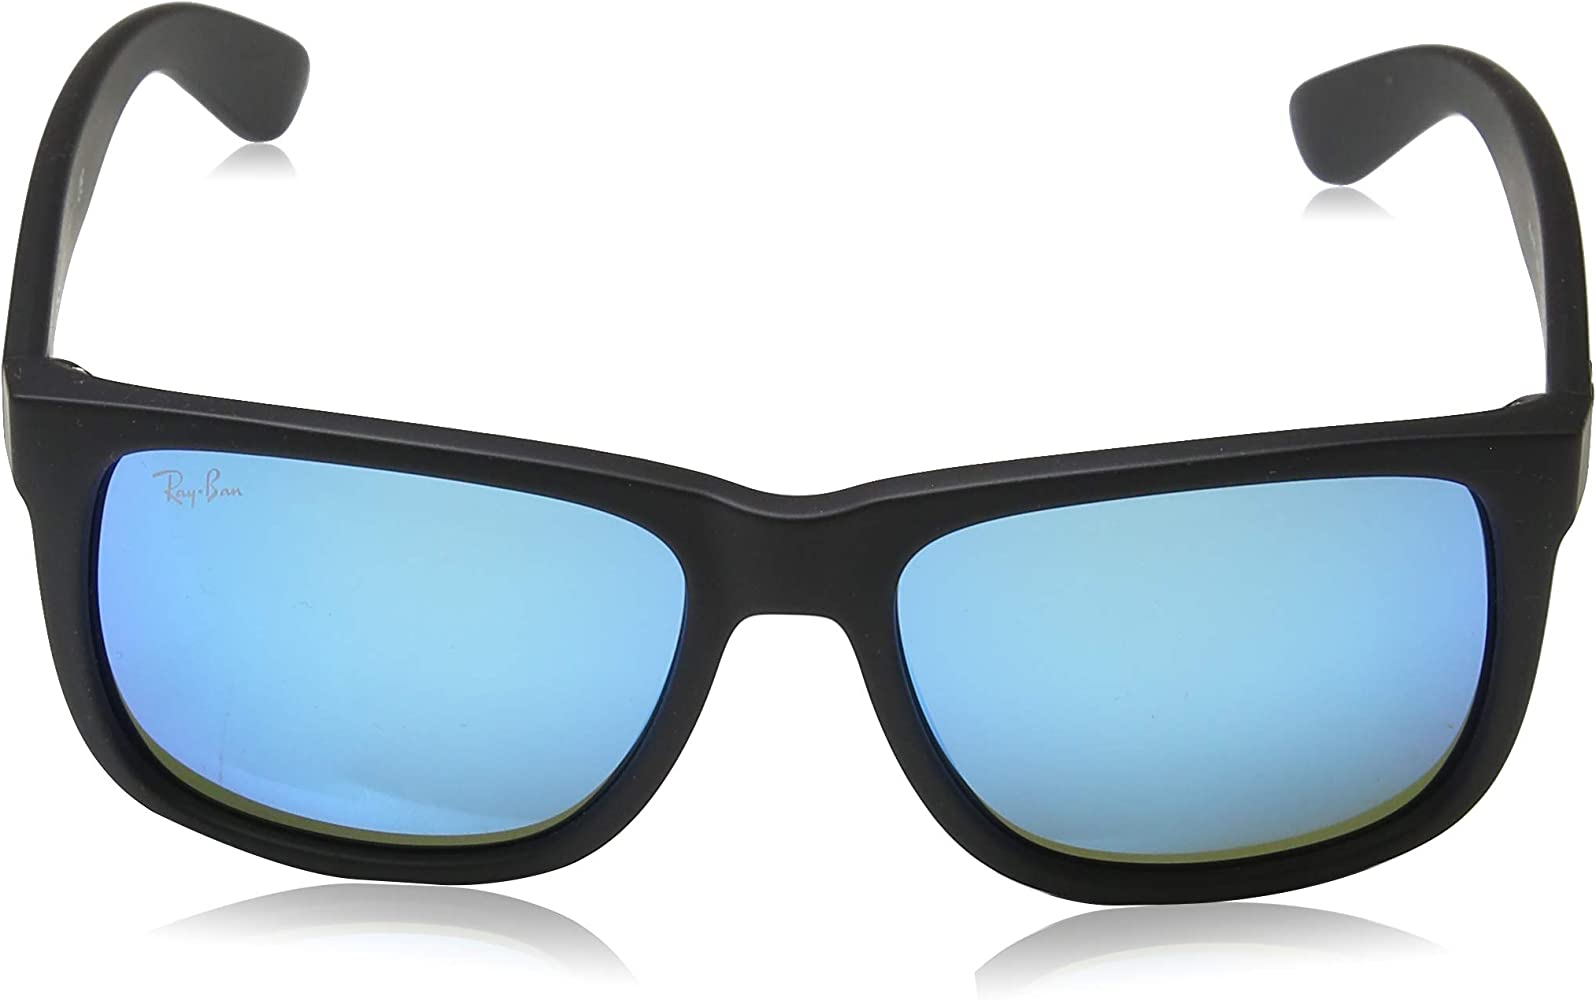 Amazon.com: Ray-Ban 0RB4165 Wayfarer lentes de sol: Clothing